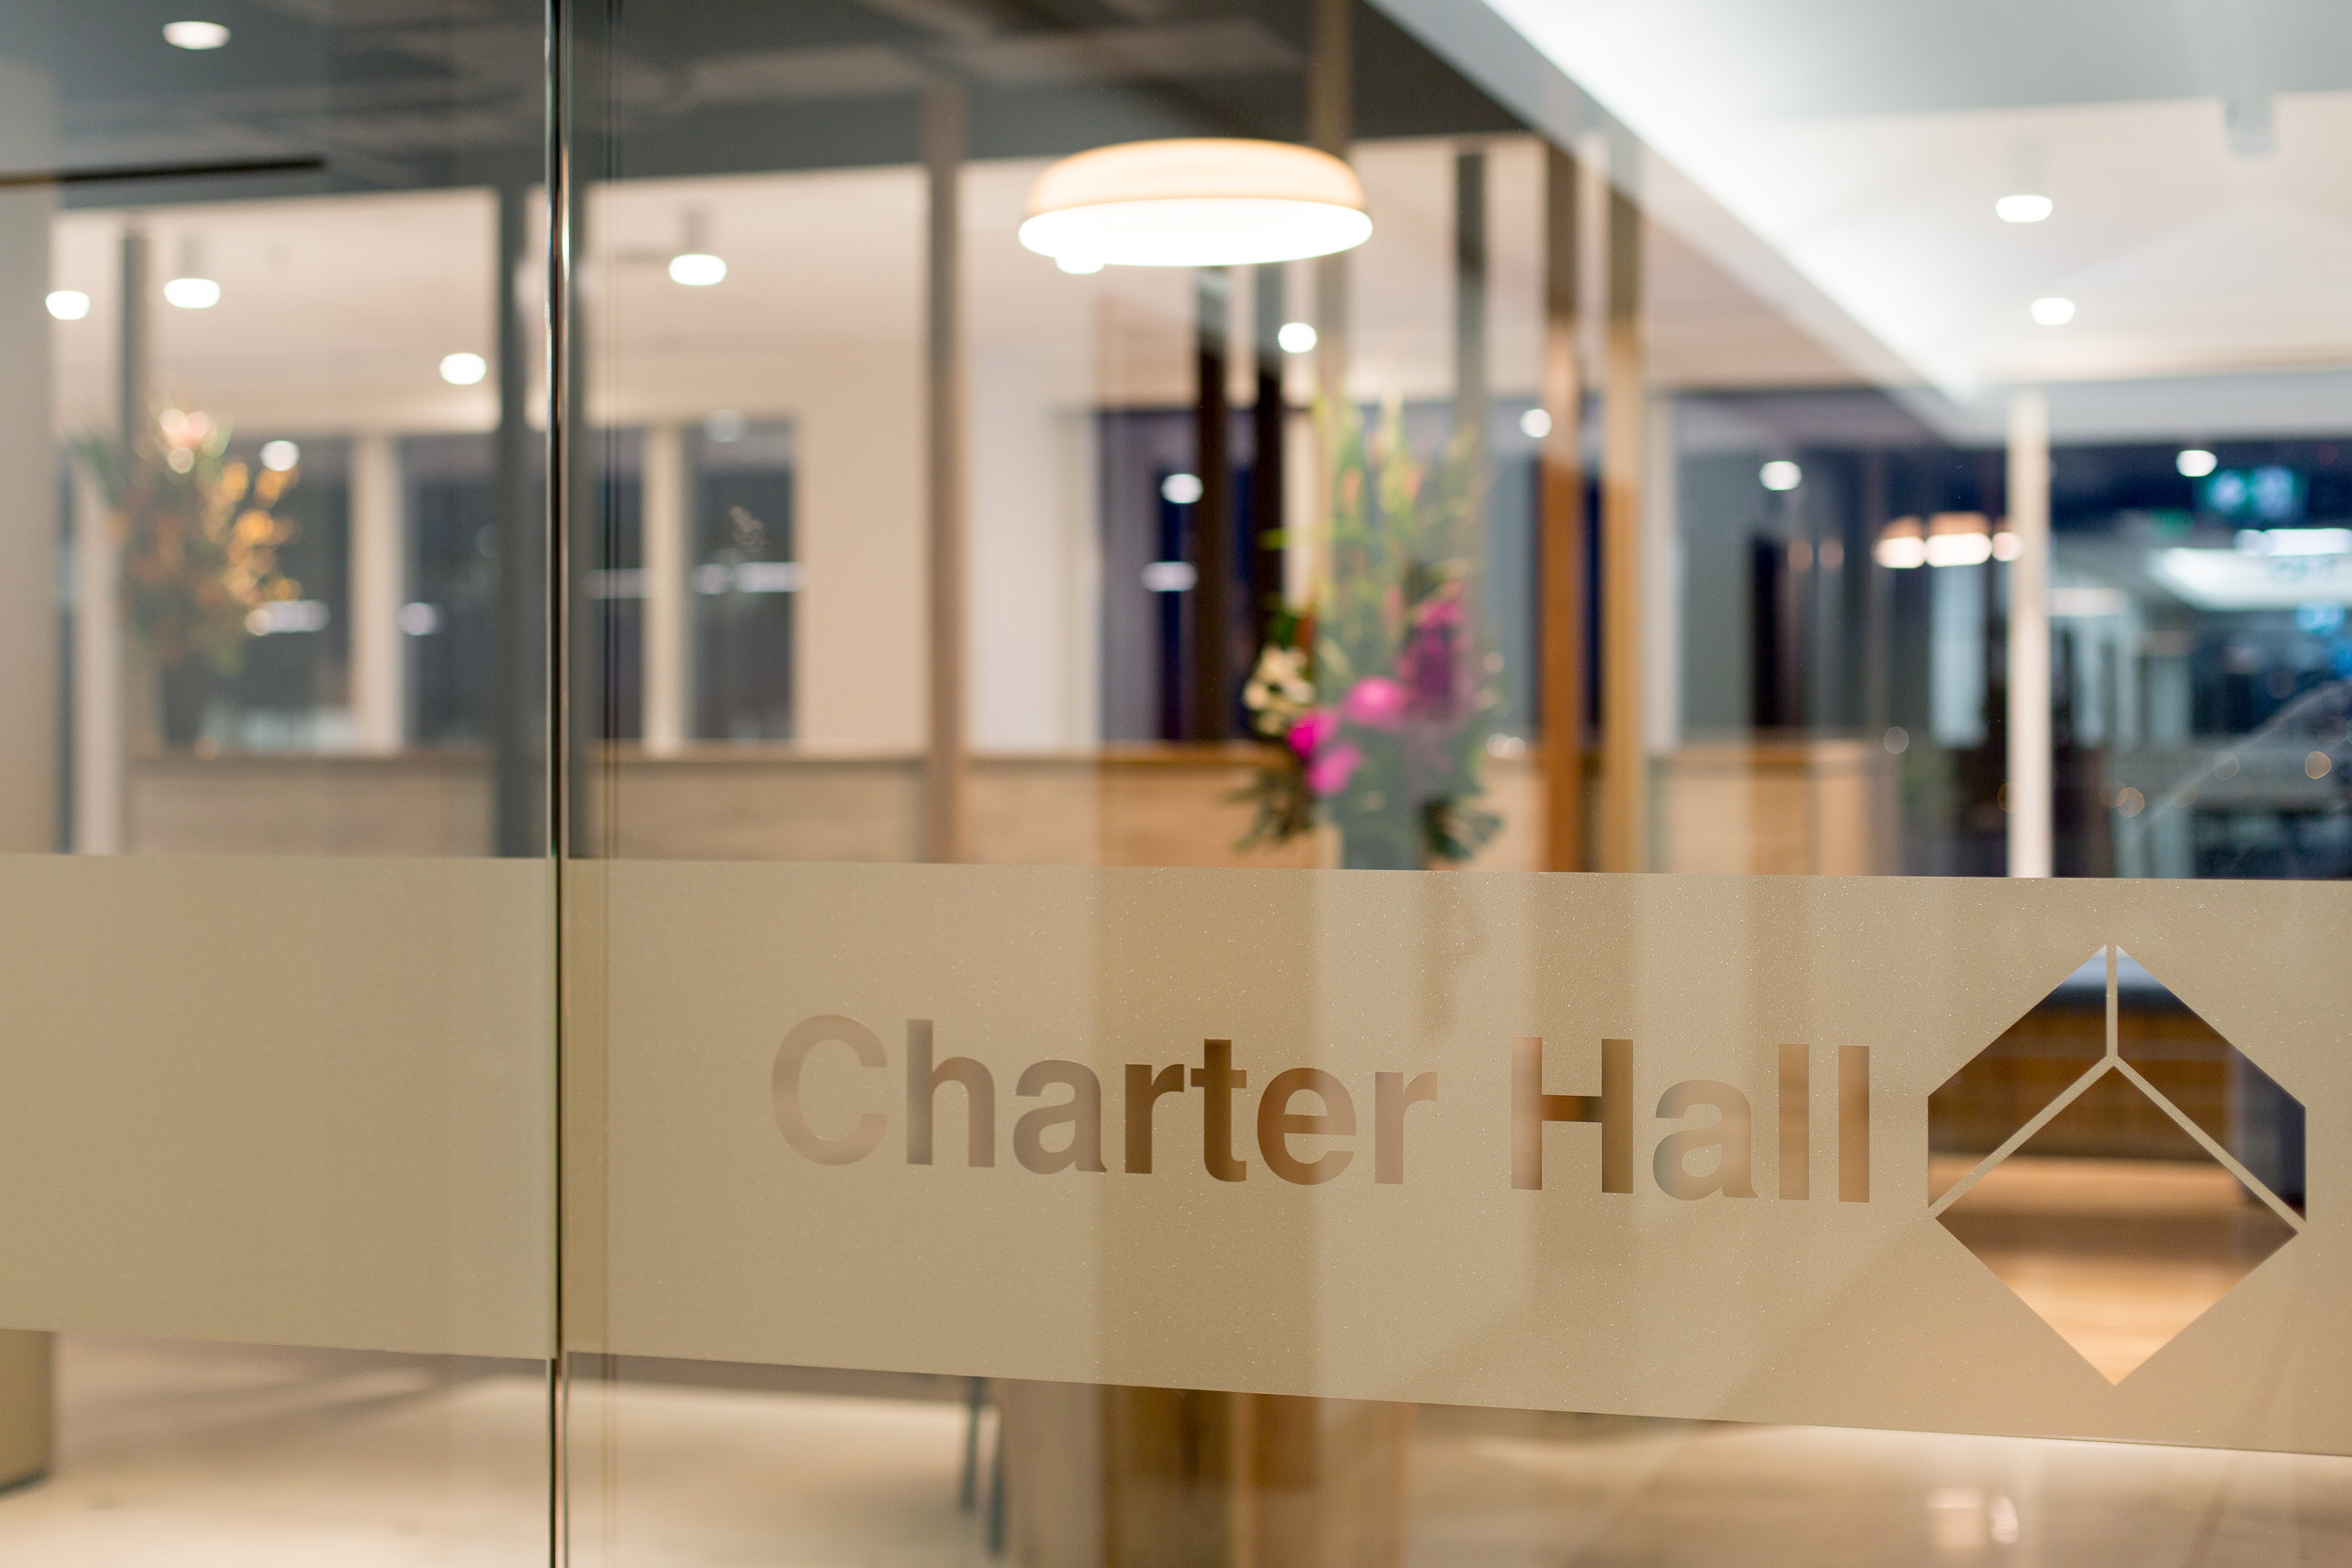 Charter Hall currently has a $900 million development pipeline.